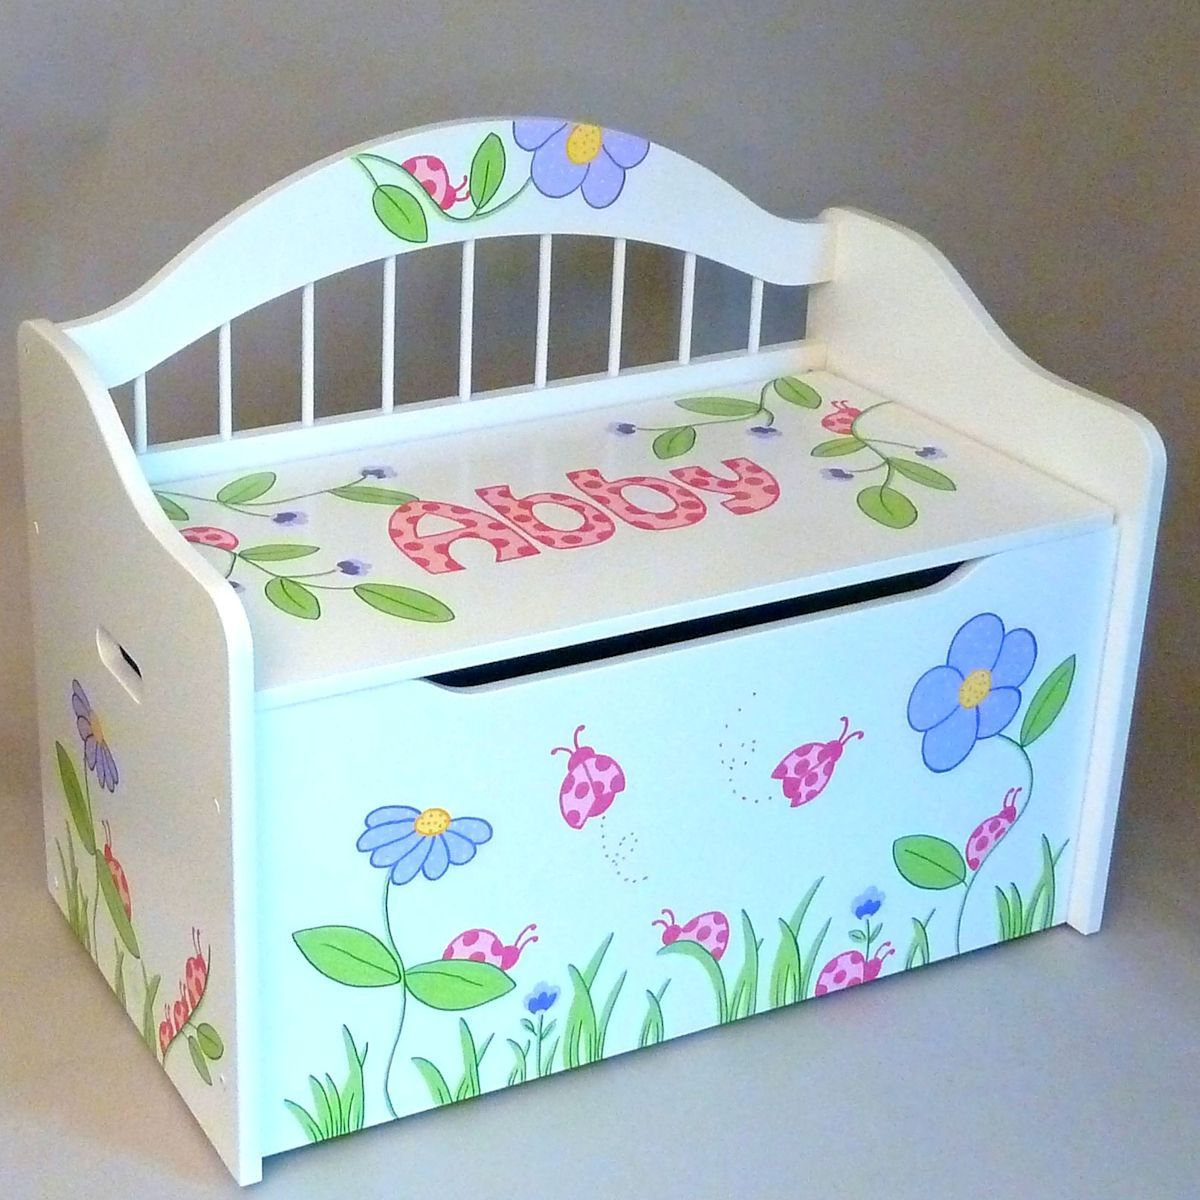 Personalized deacons bench toy box white toy boxes toy box personalized deacons bench toy negle Images